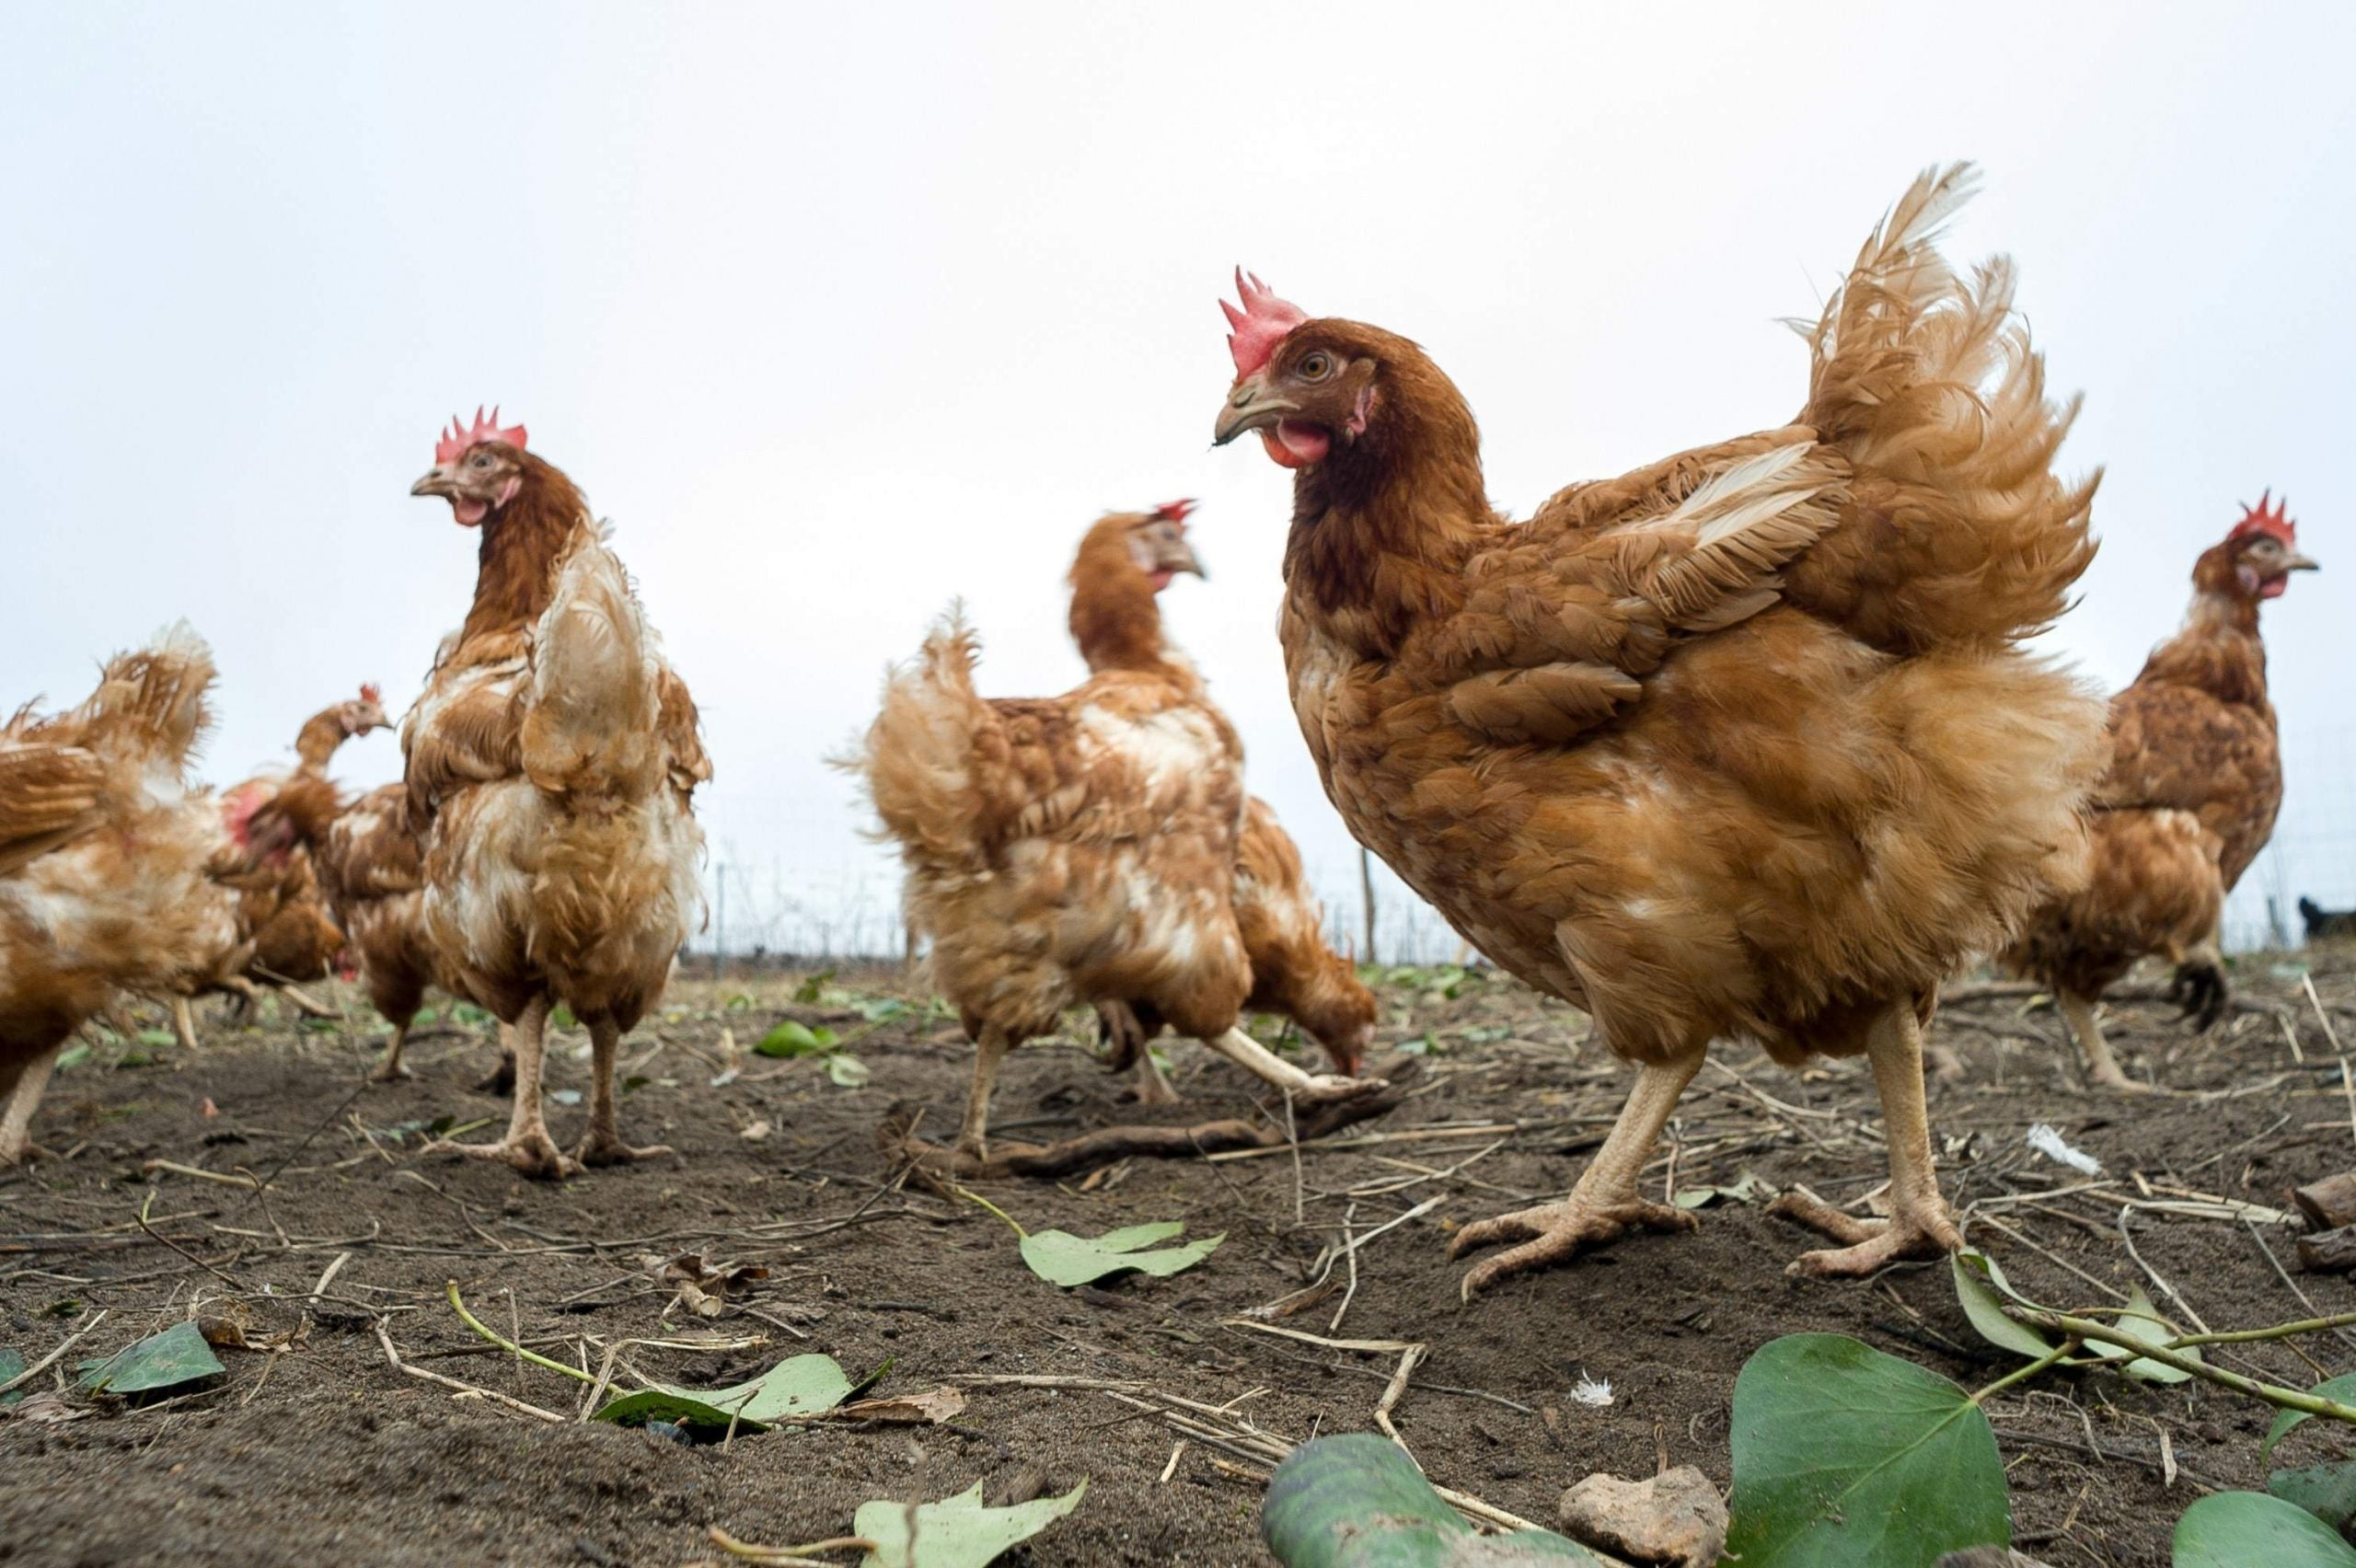 The radio station where the loyal listeners are chickens